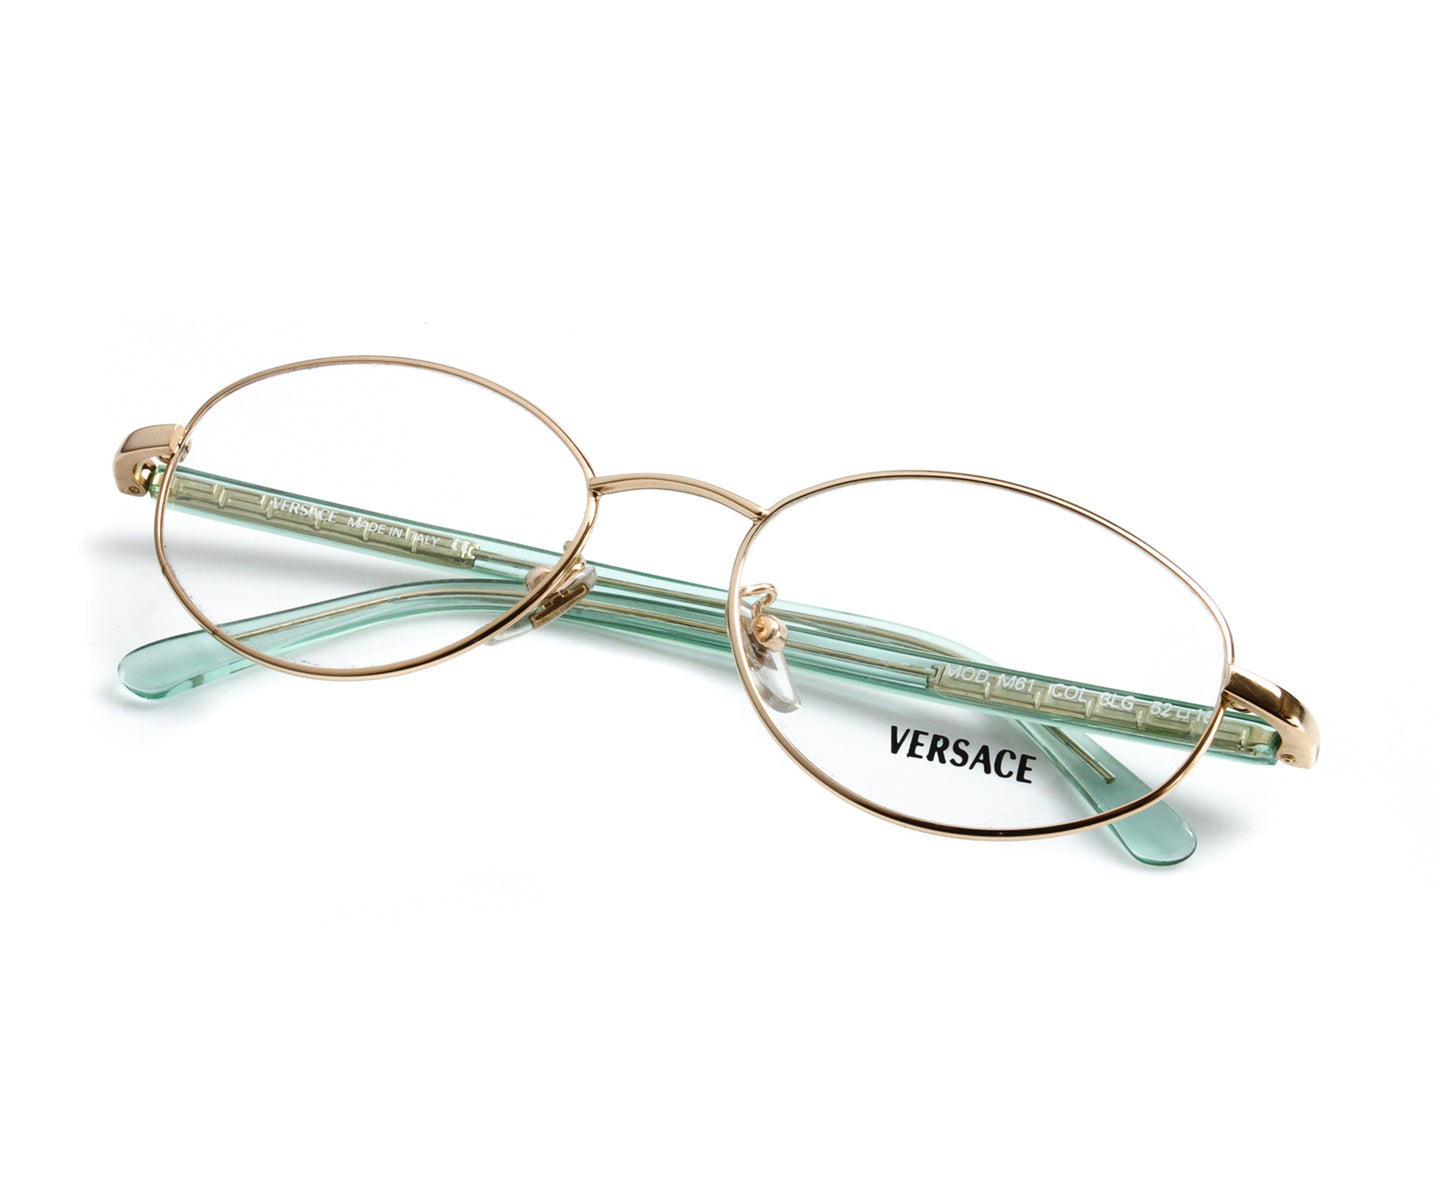 Versace M61 3LG, Versace , glasses frames, eyeglasses online, eyeglass frames, mens glasses, womens glasses, buy glasses online, designer eyeglasses, vintage sunglasses, retro sunglasses, vintage glasses, sunglass, eyeglass, glasses, lens, vintage frames company, vf